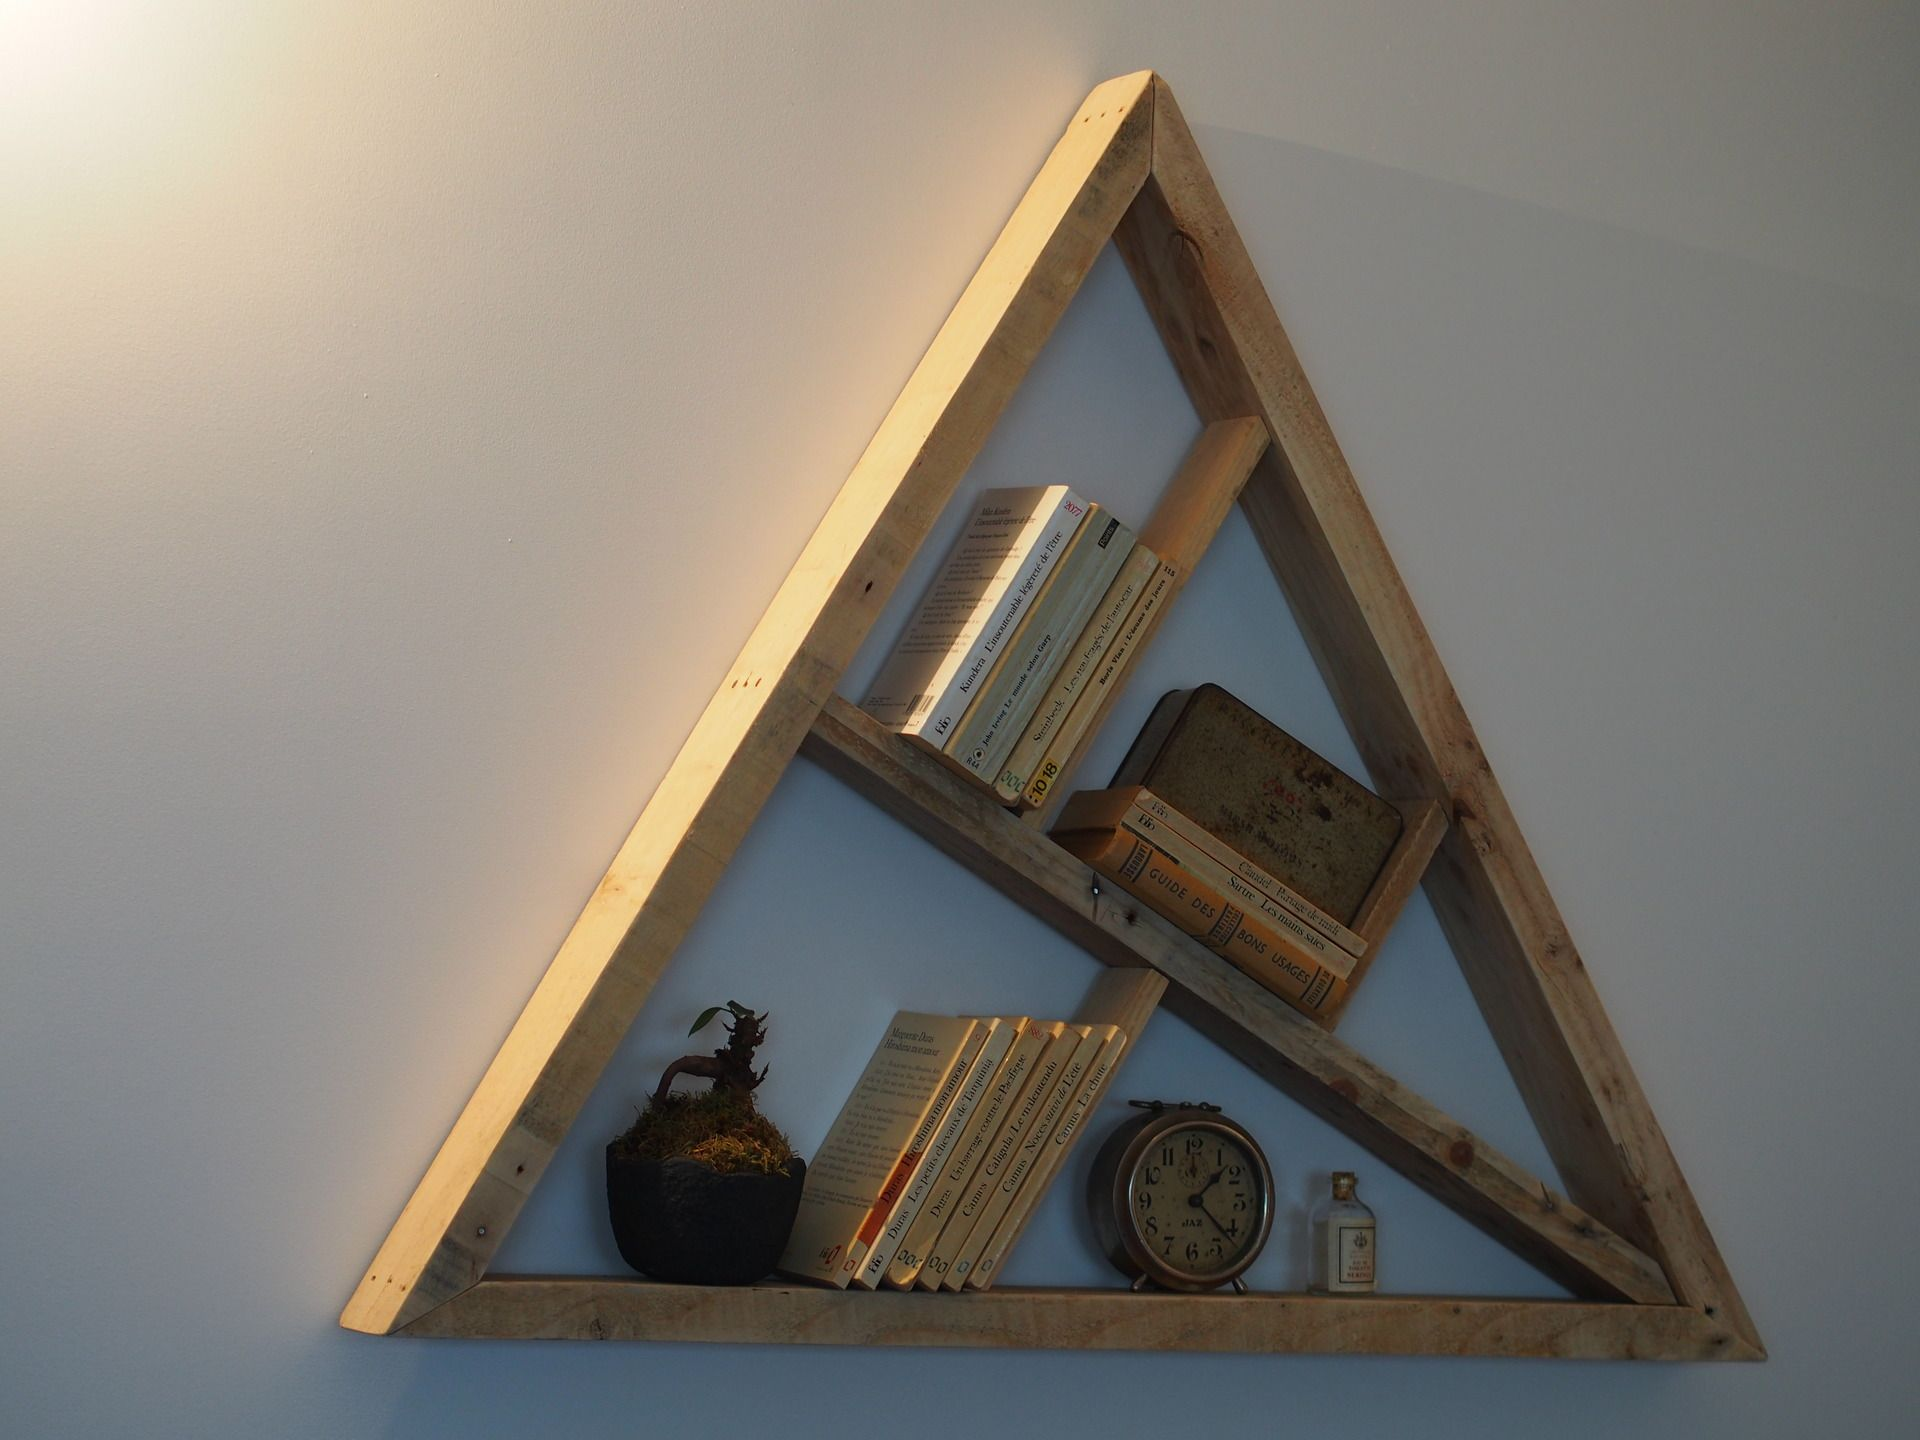 Etag re biblioth que triangle en bois recycl palette for Etagere avec palette